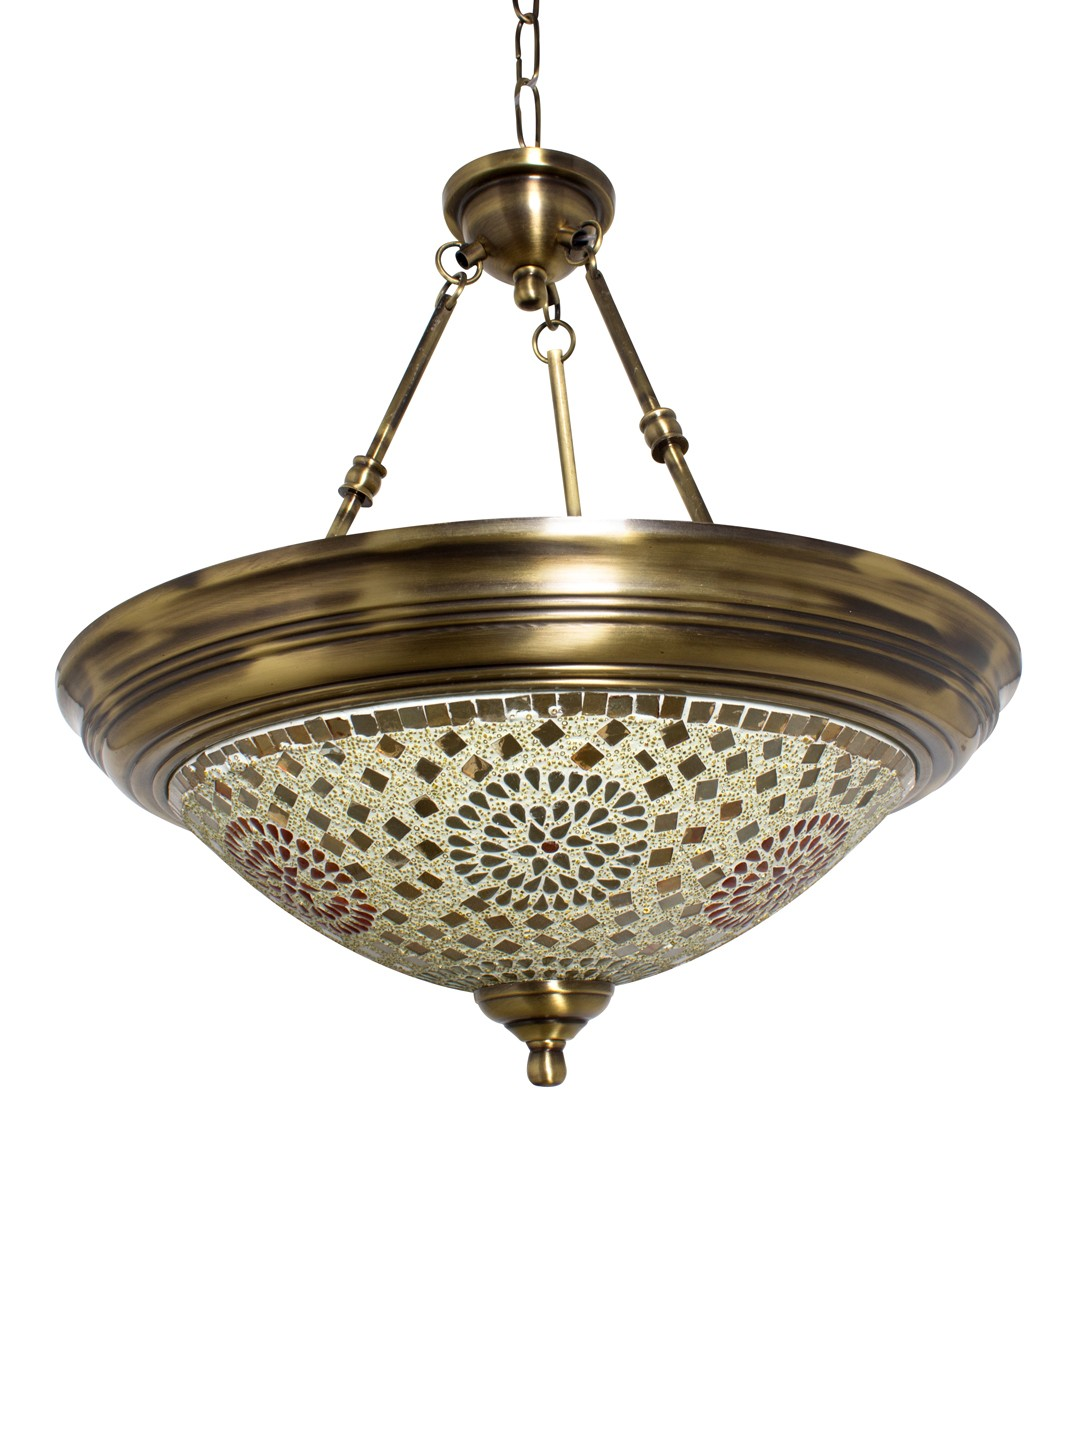 Dish Tilak Antique Brass 3 Light Hanging Light